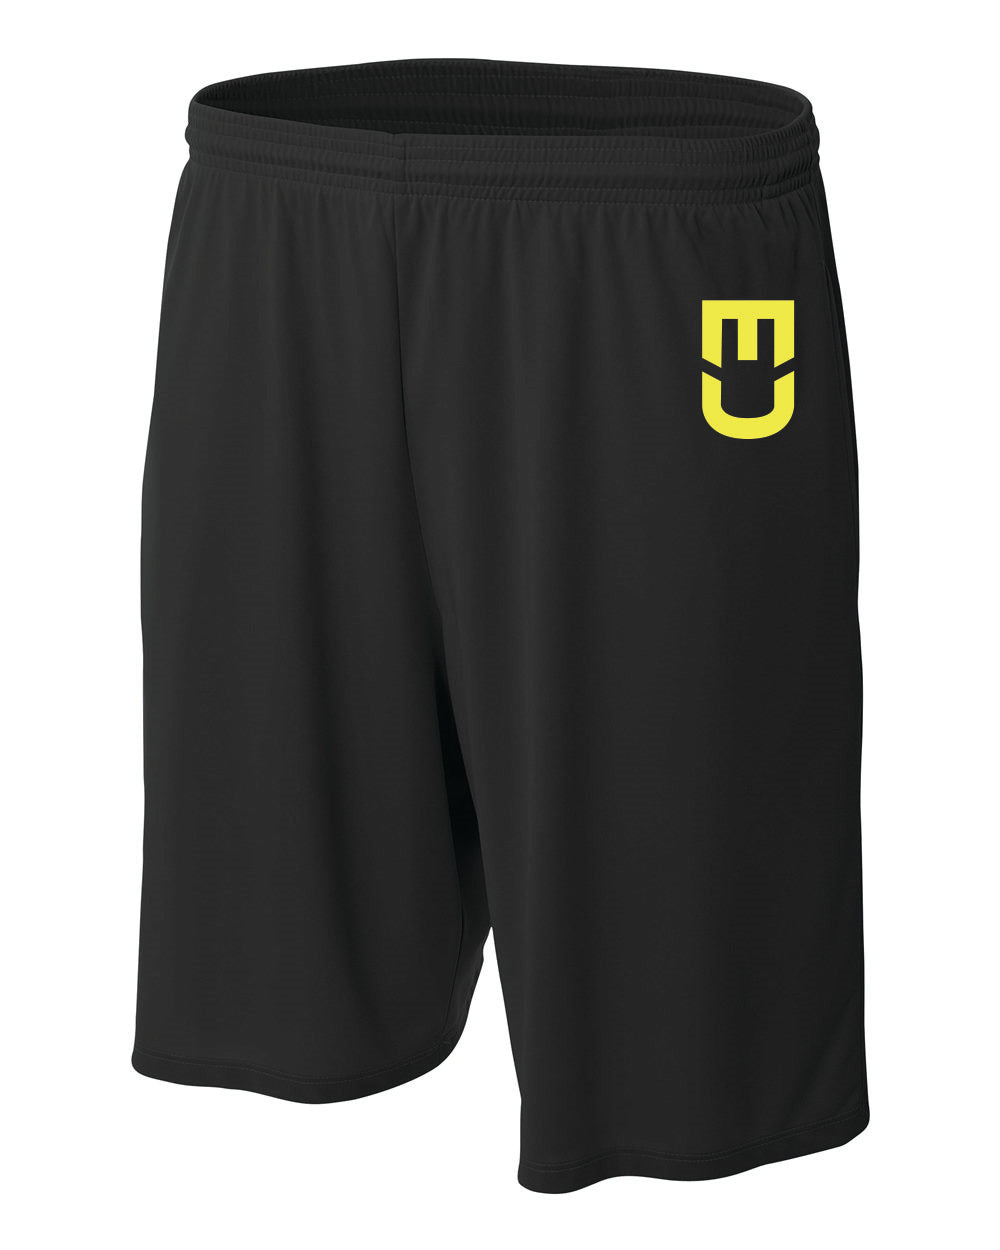 EU Men Drifit Shorts - Black / Sizes for Men Only